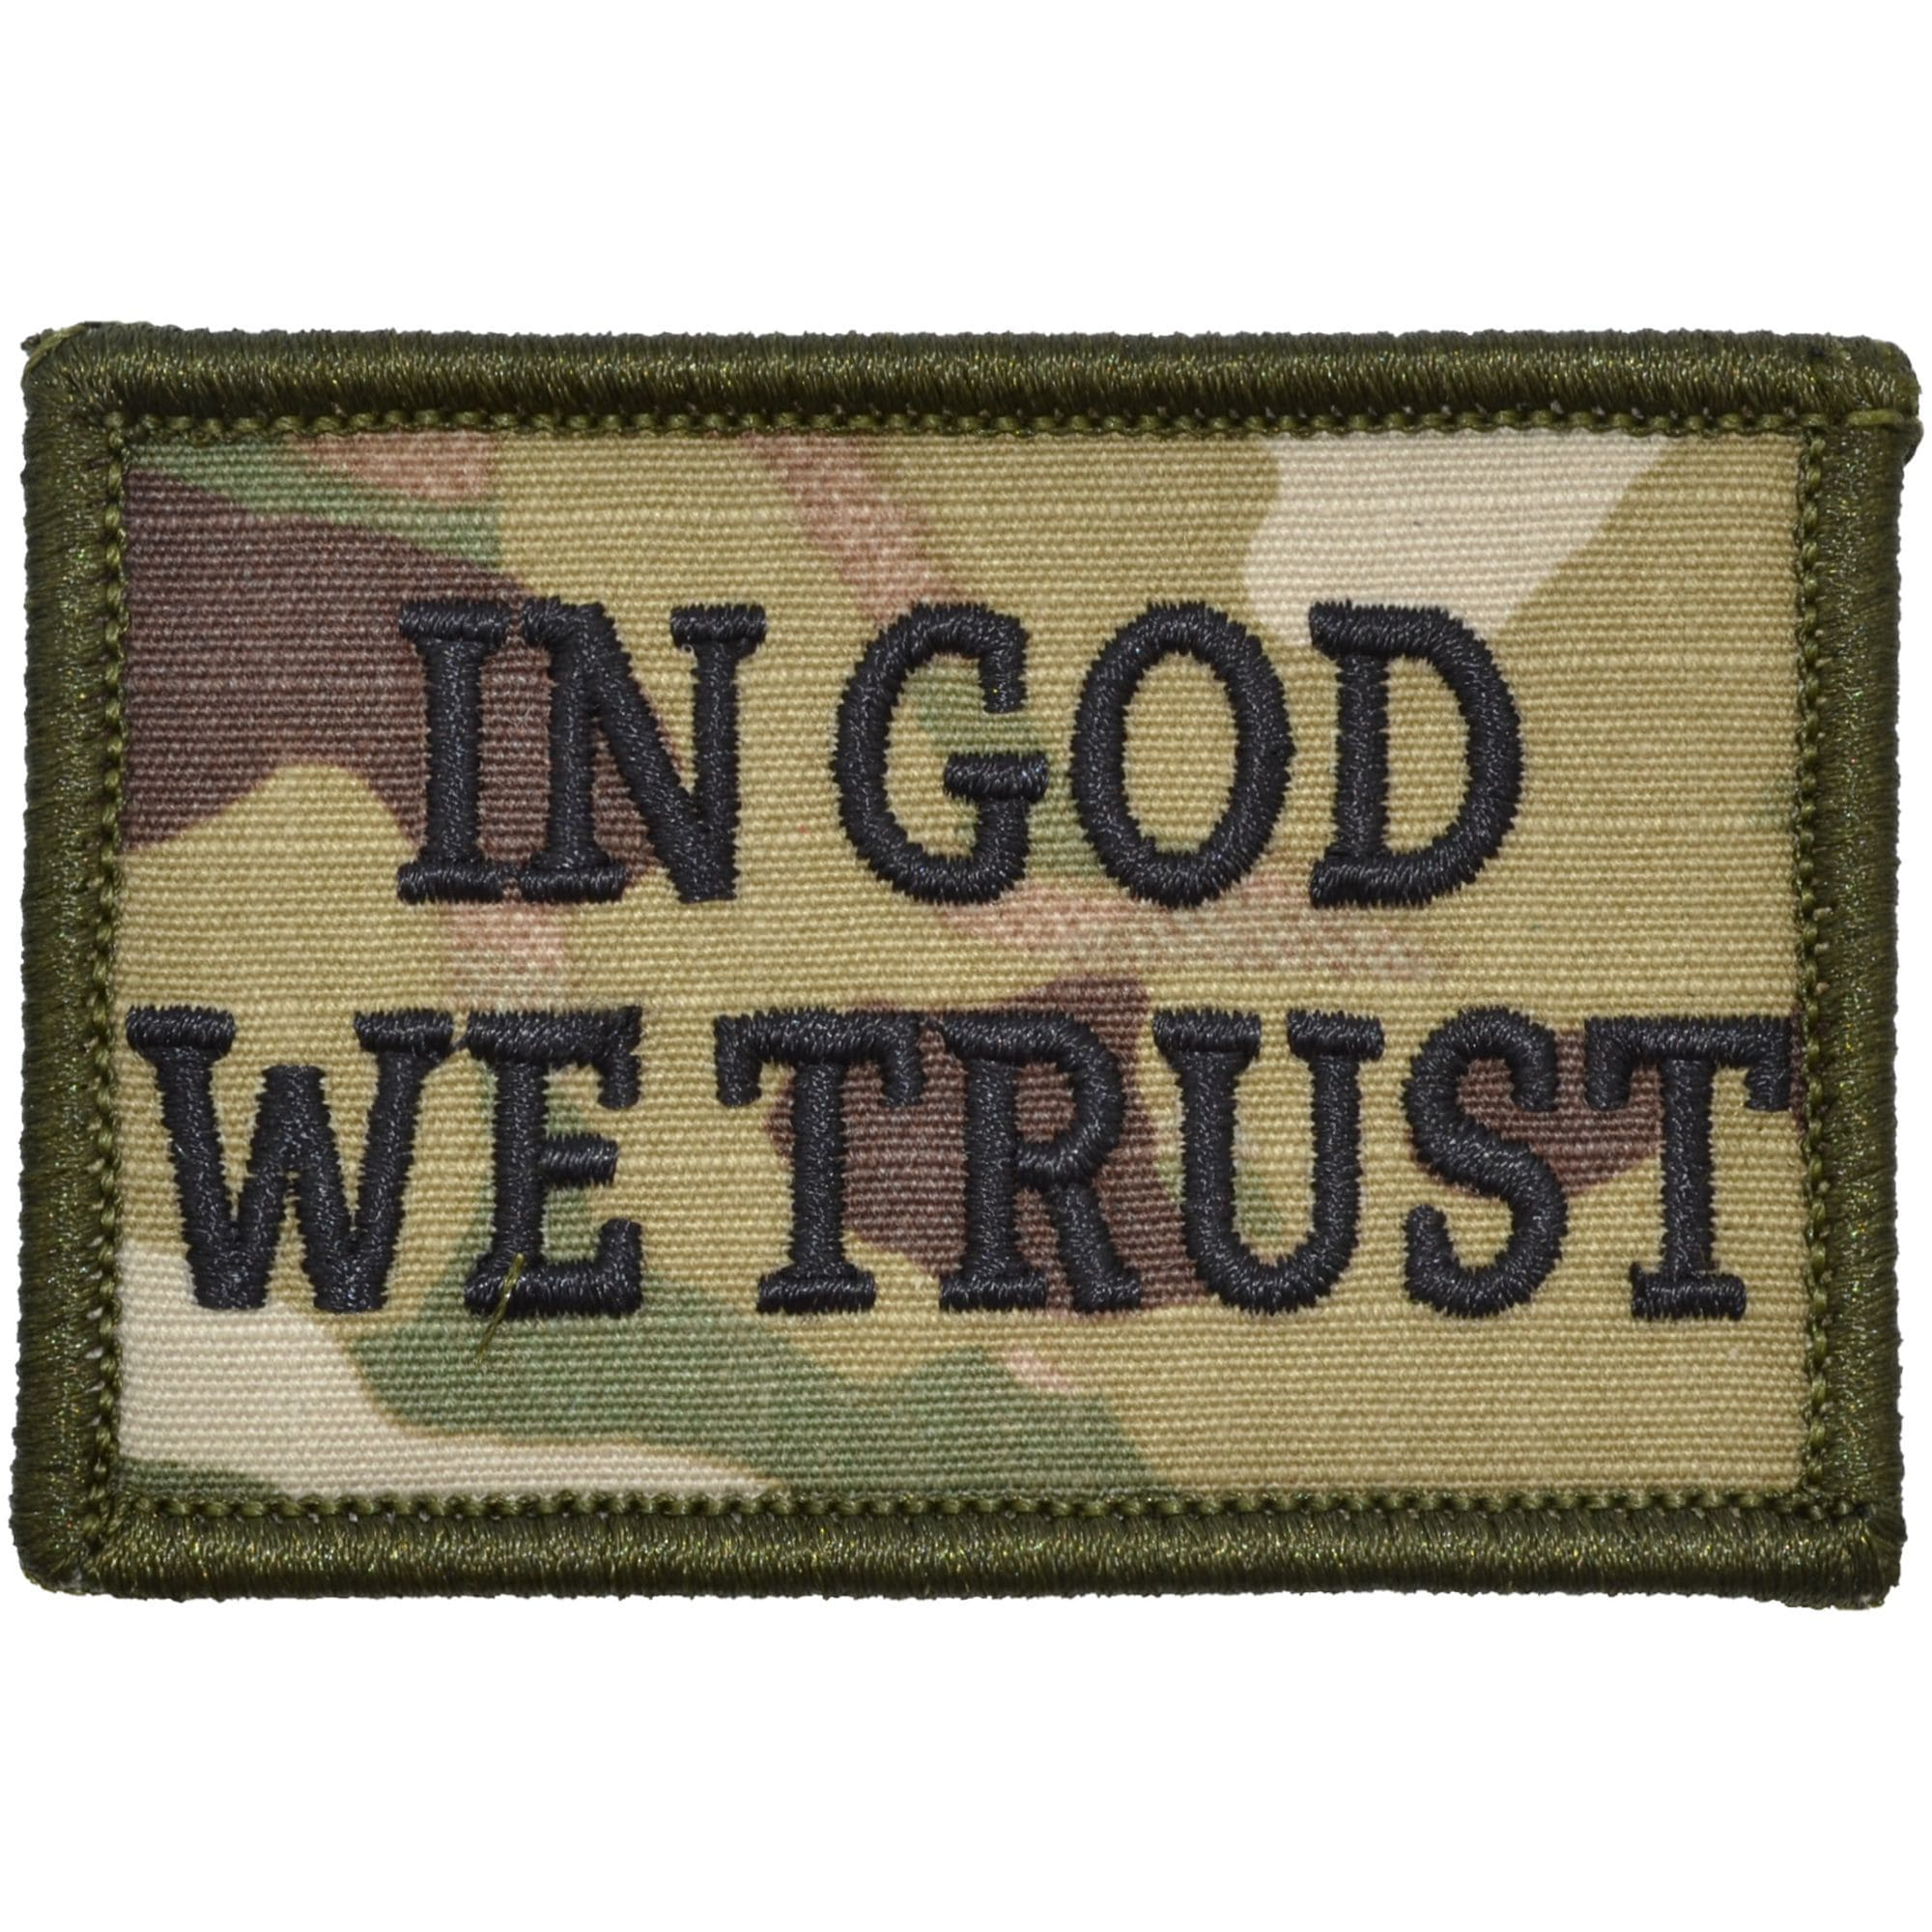 In God We Trust - 2x3 Patch